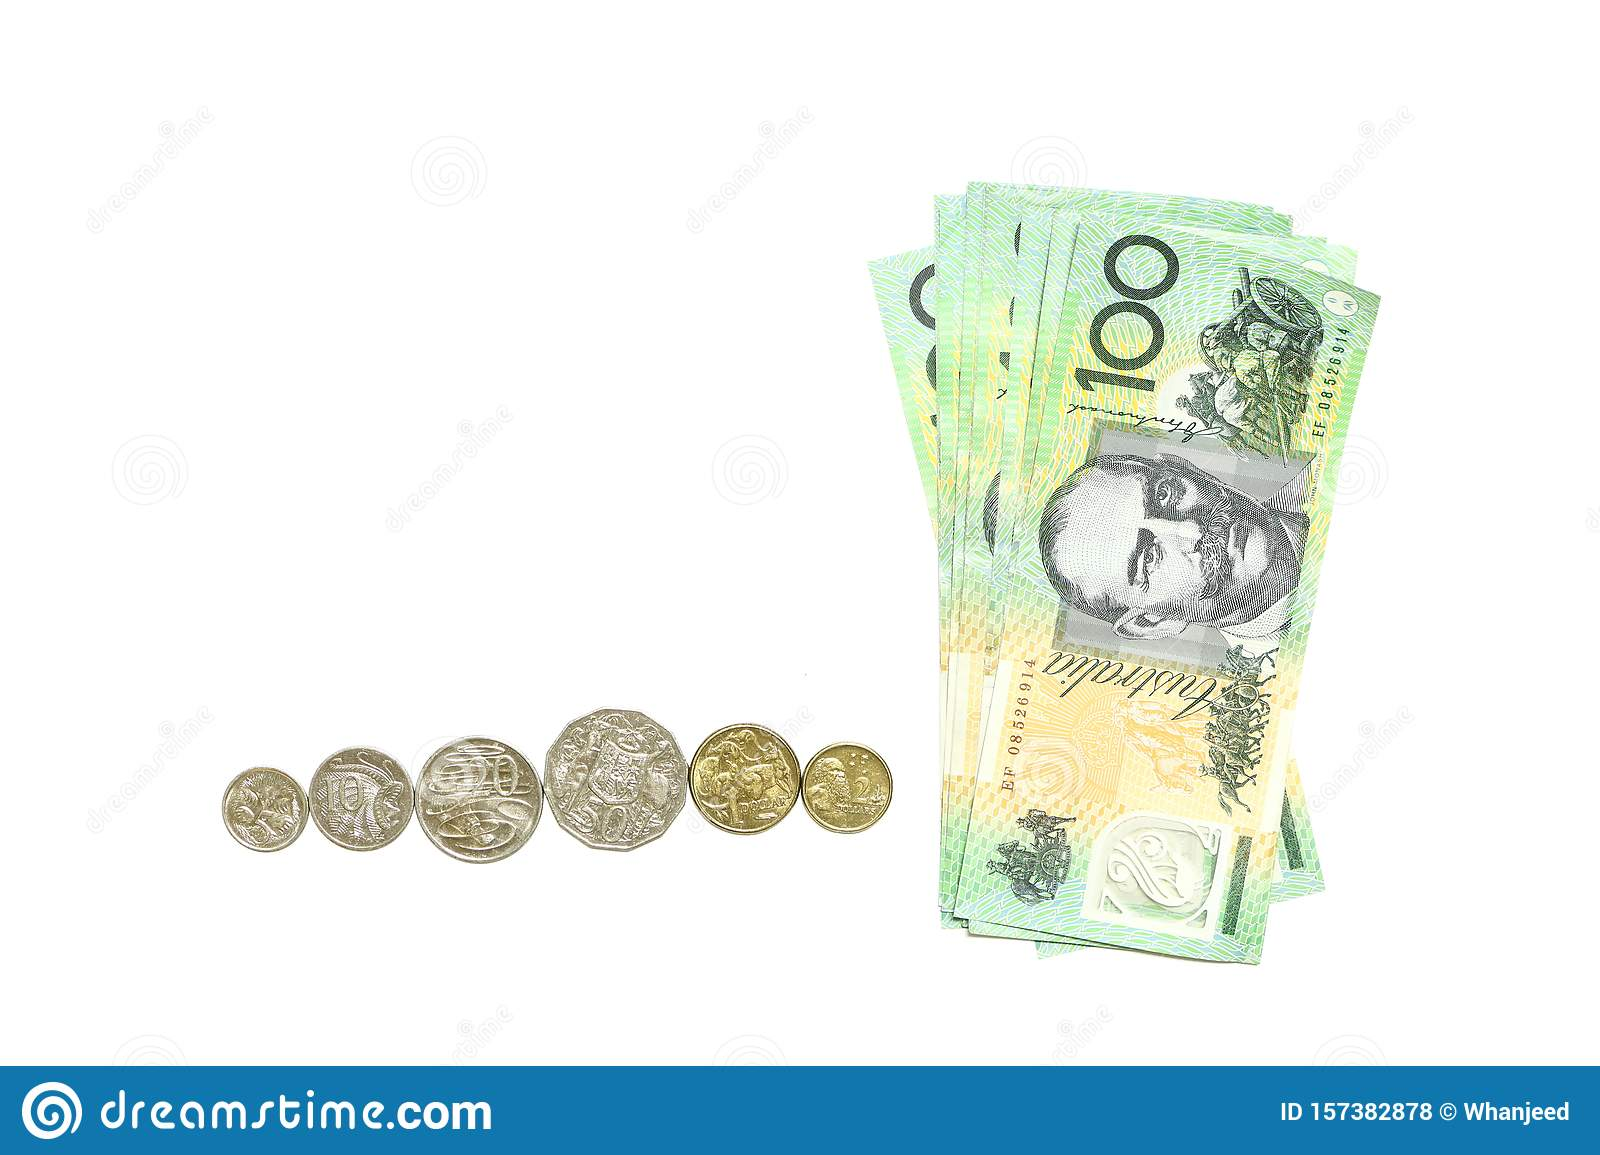 Group of 100 dollar Australian notes and many coins aud on white background